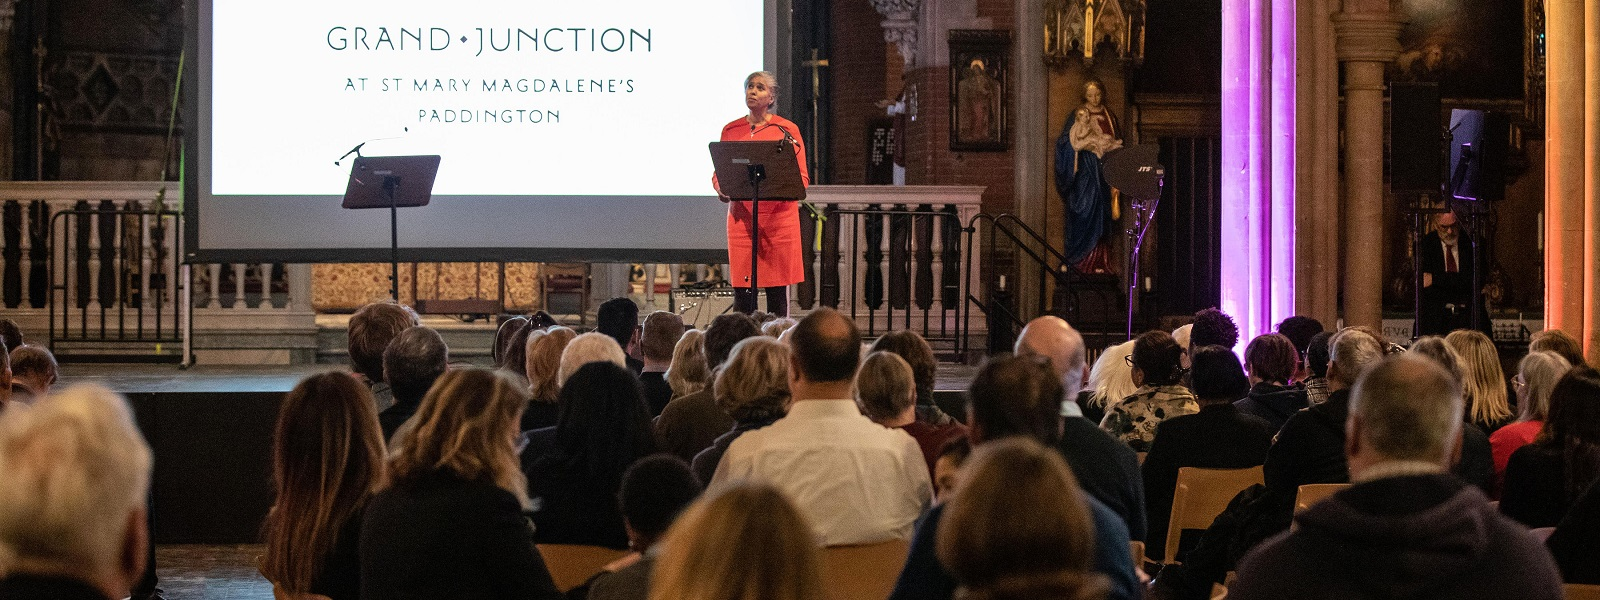 Blondel Cluff CBE launches Grand Junction at St Mary Magdalene's